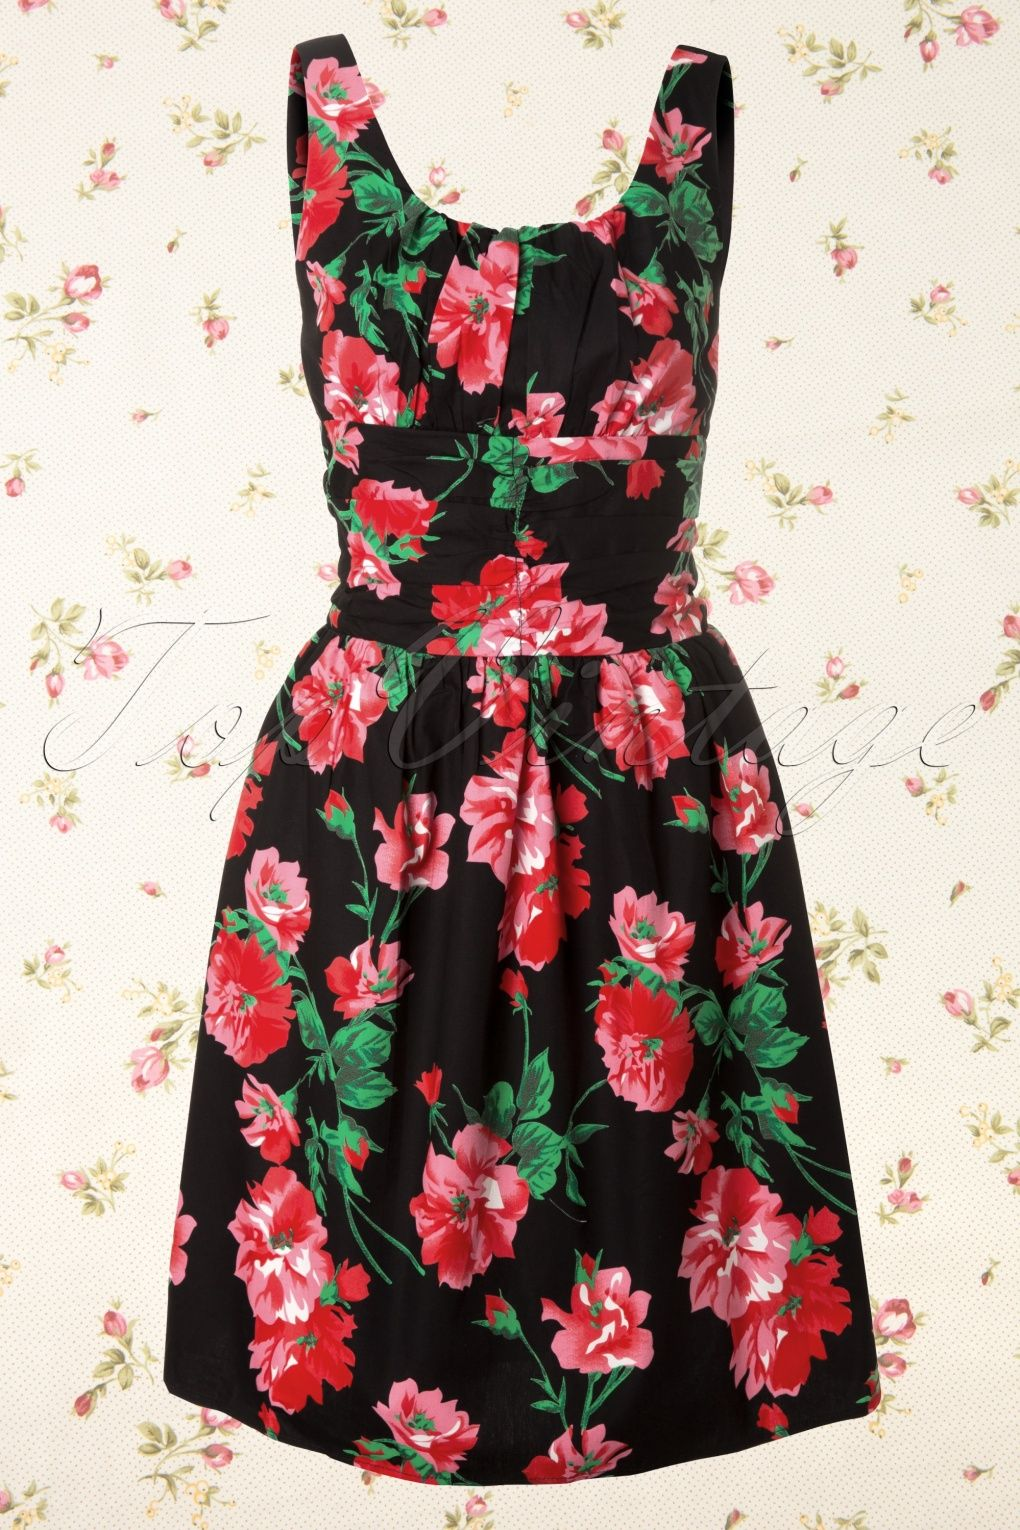 Find This Pin And More On Flowers Make You Hy Vixen Black Red Dress